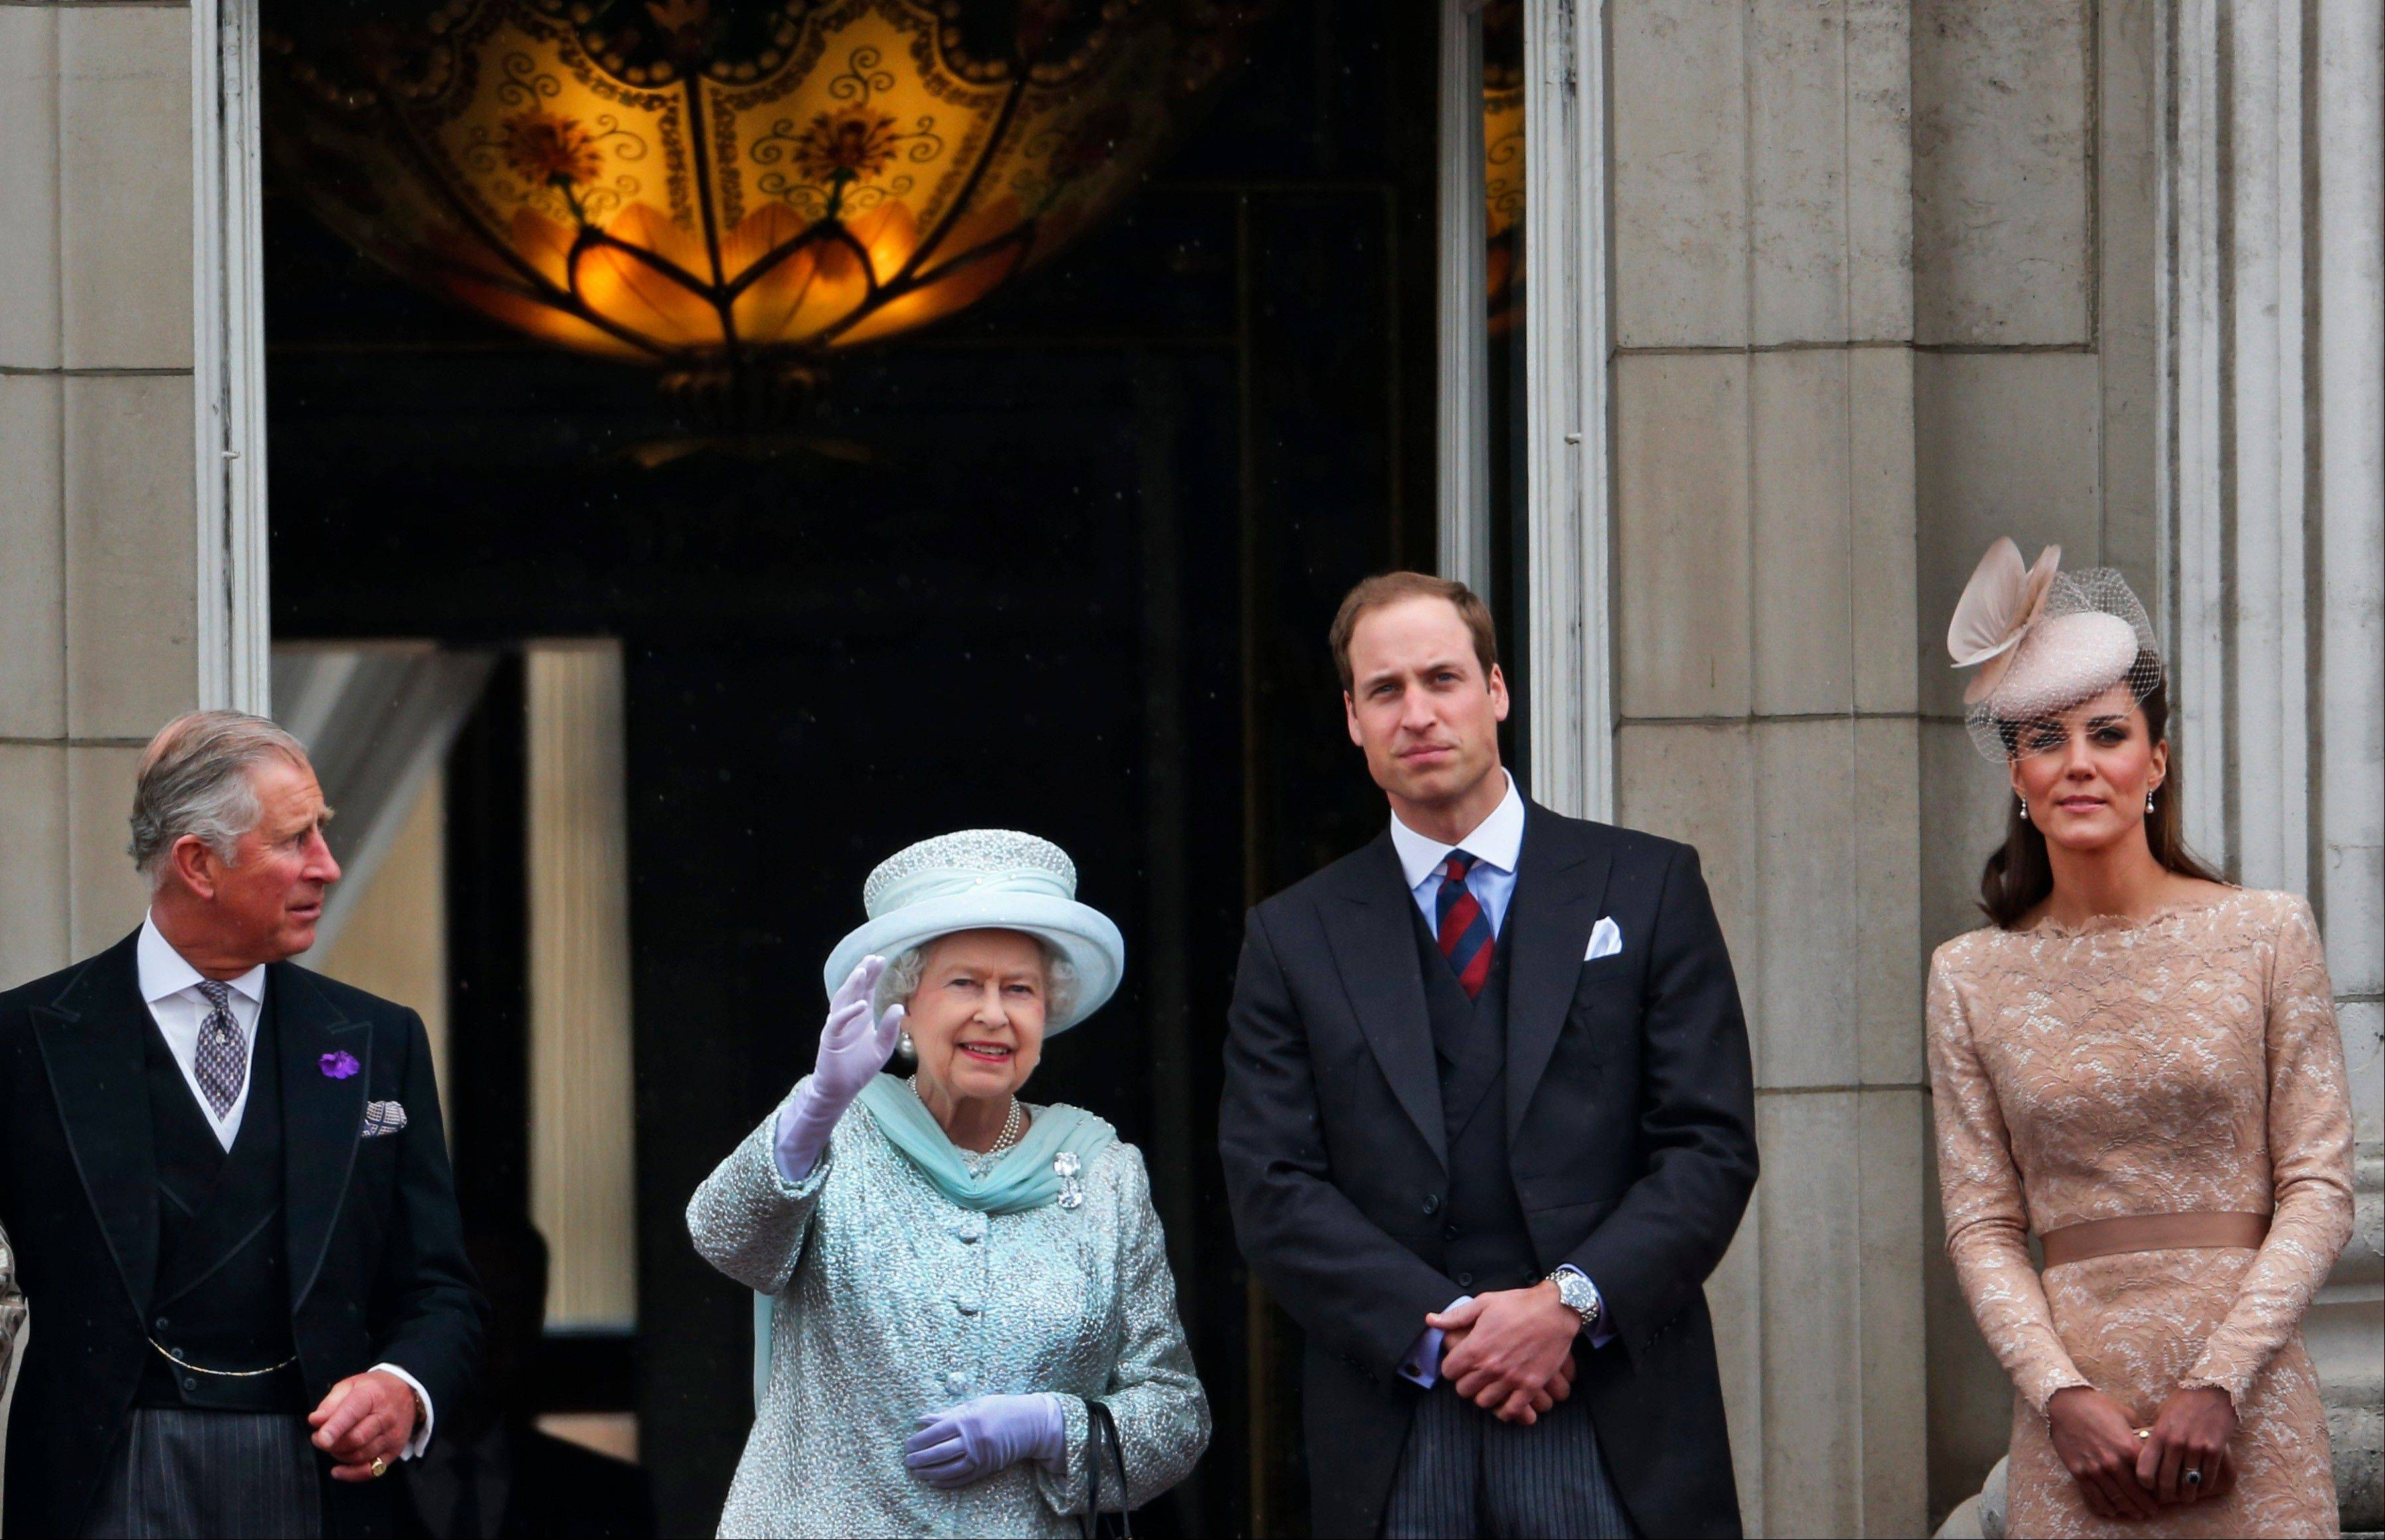 Britain's Queen Elizabeth II, 2nd left, Prince Charles, left, and Prince William, and Kate, Duchess of Cambridge appear on the balcony of Buckingham Palace in central London, Tuesday, June 5, 2012, to conclude the four-day Diamond Jubilee celebrations to mark the 60th anniversary of the Queen's accession to the throne.